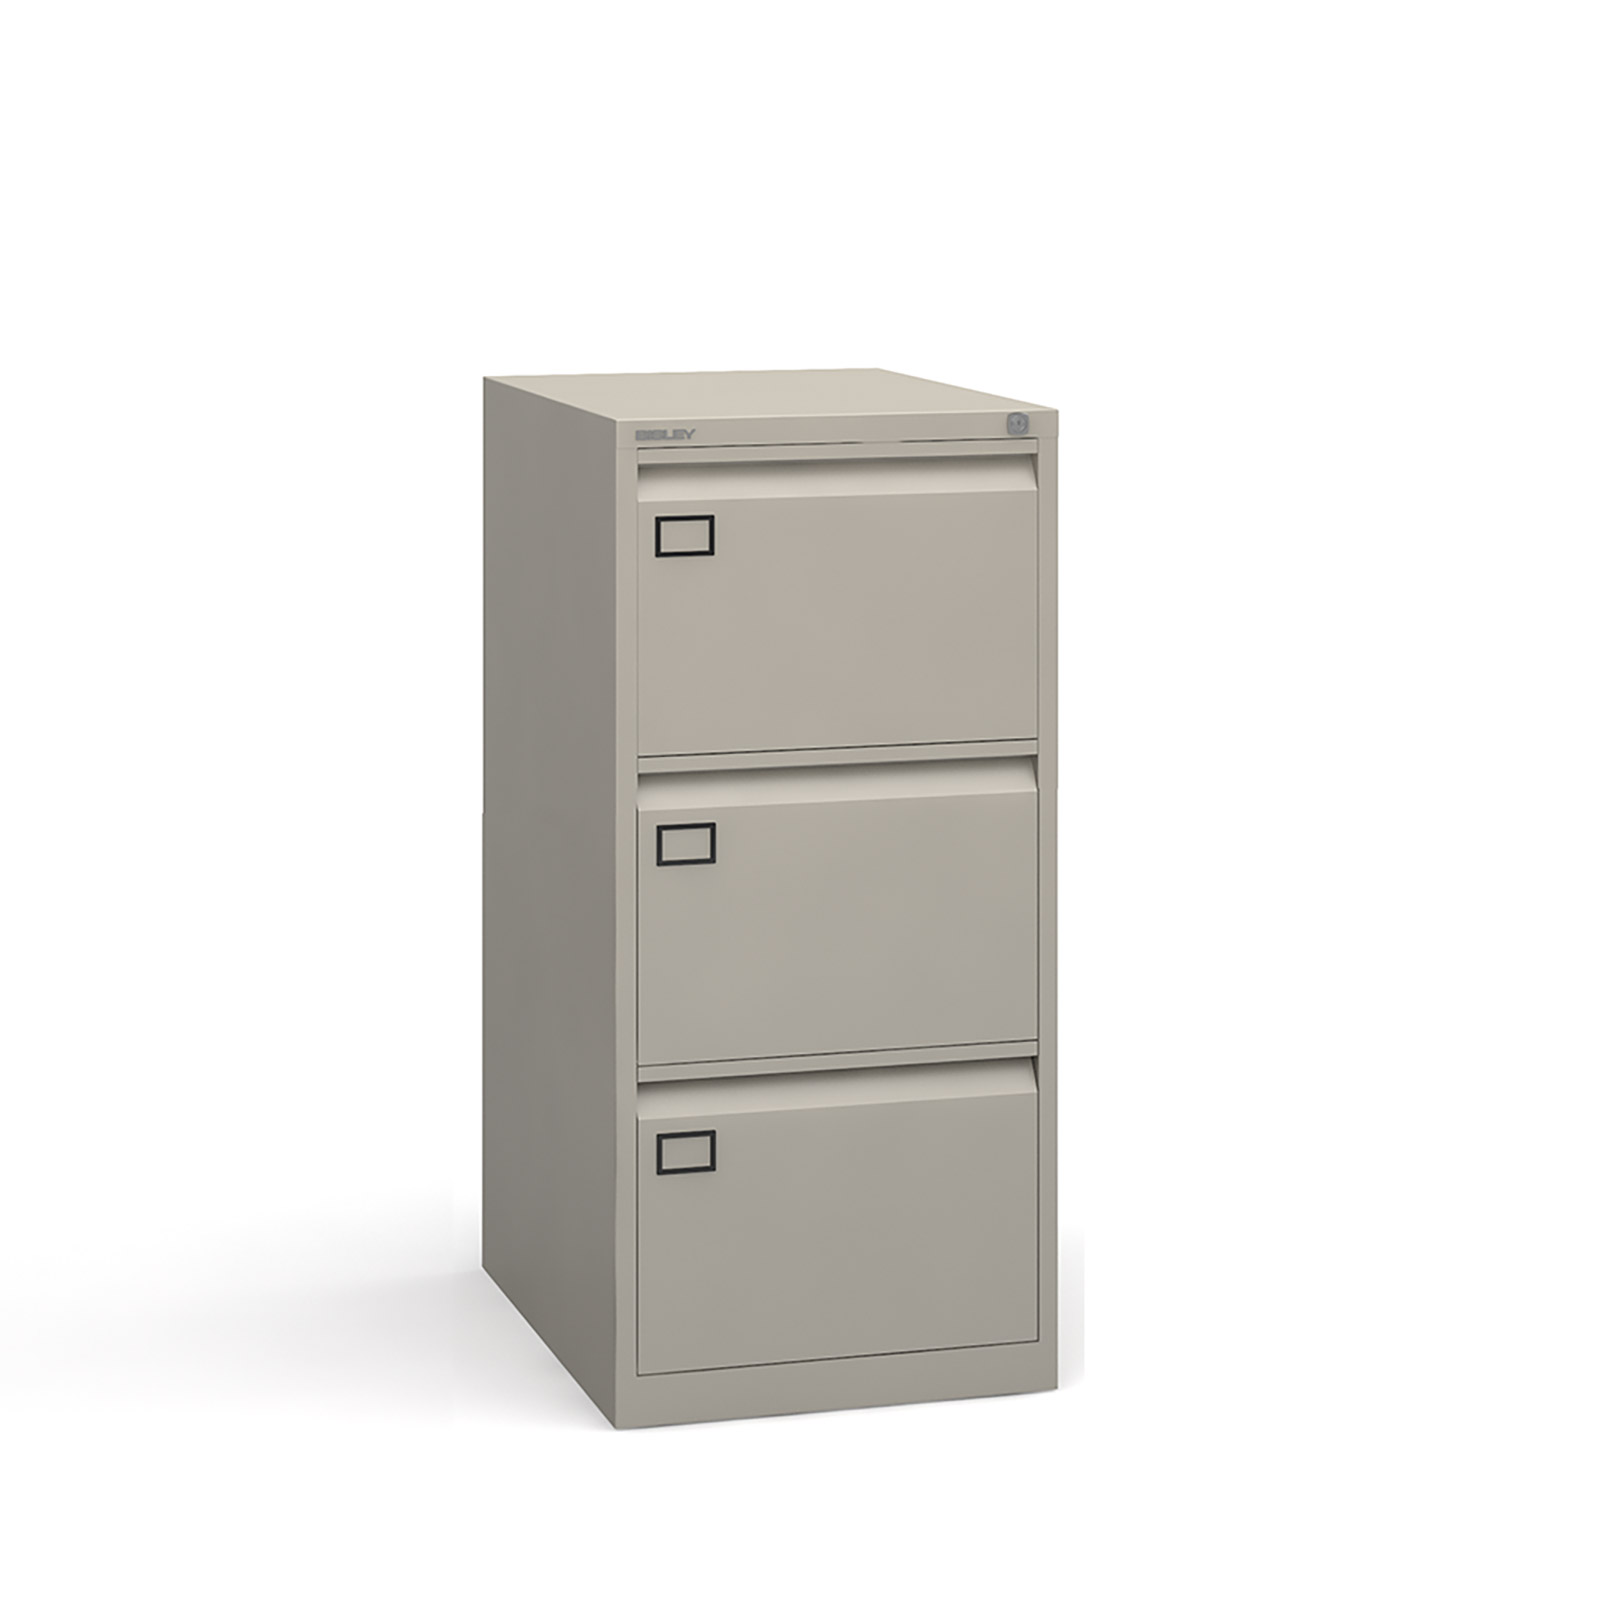 3 drawer executive filing cabinet Grey